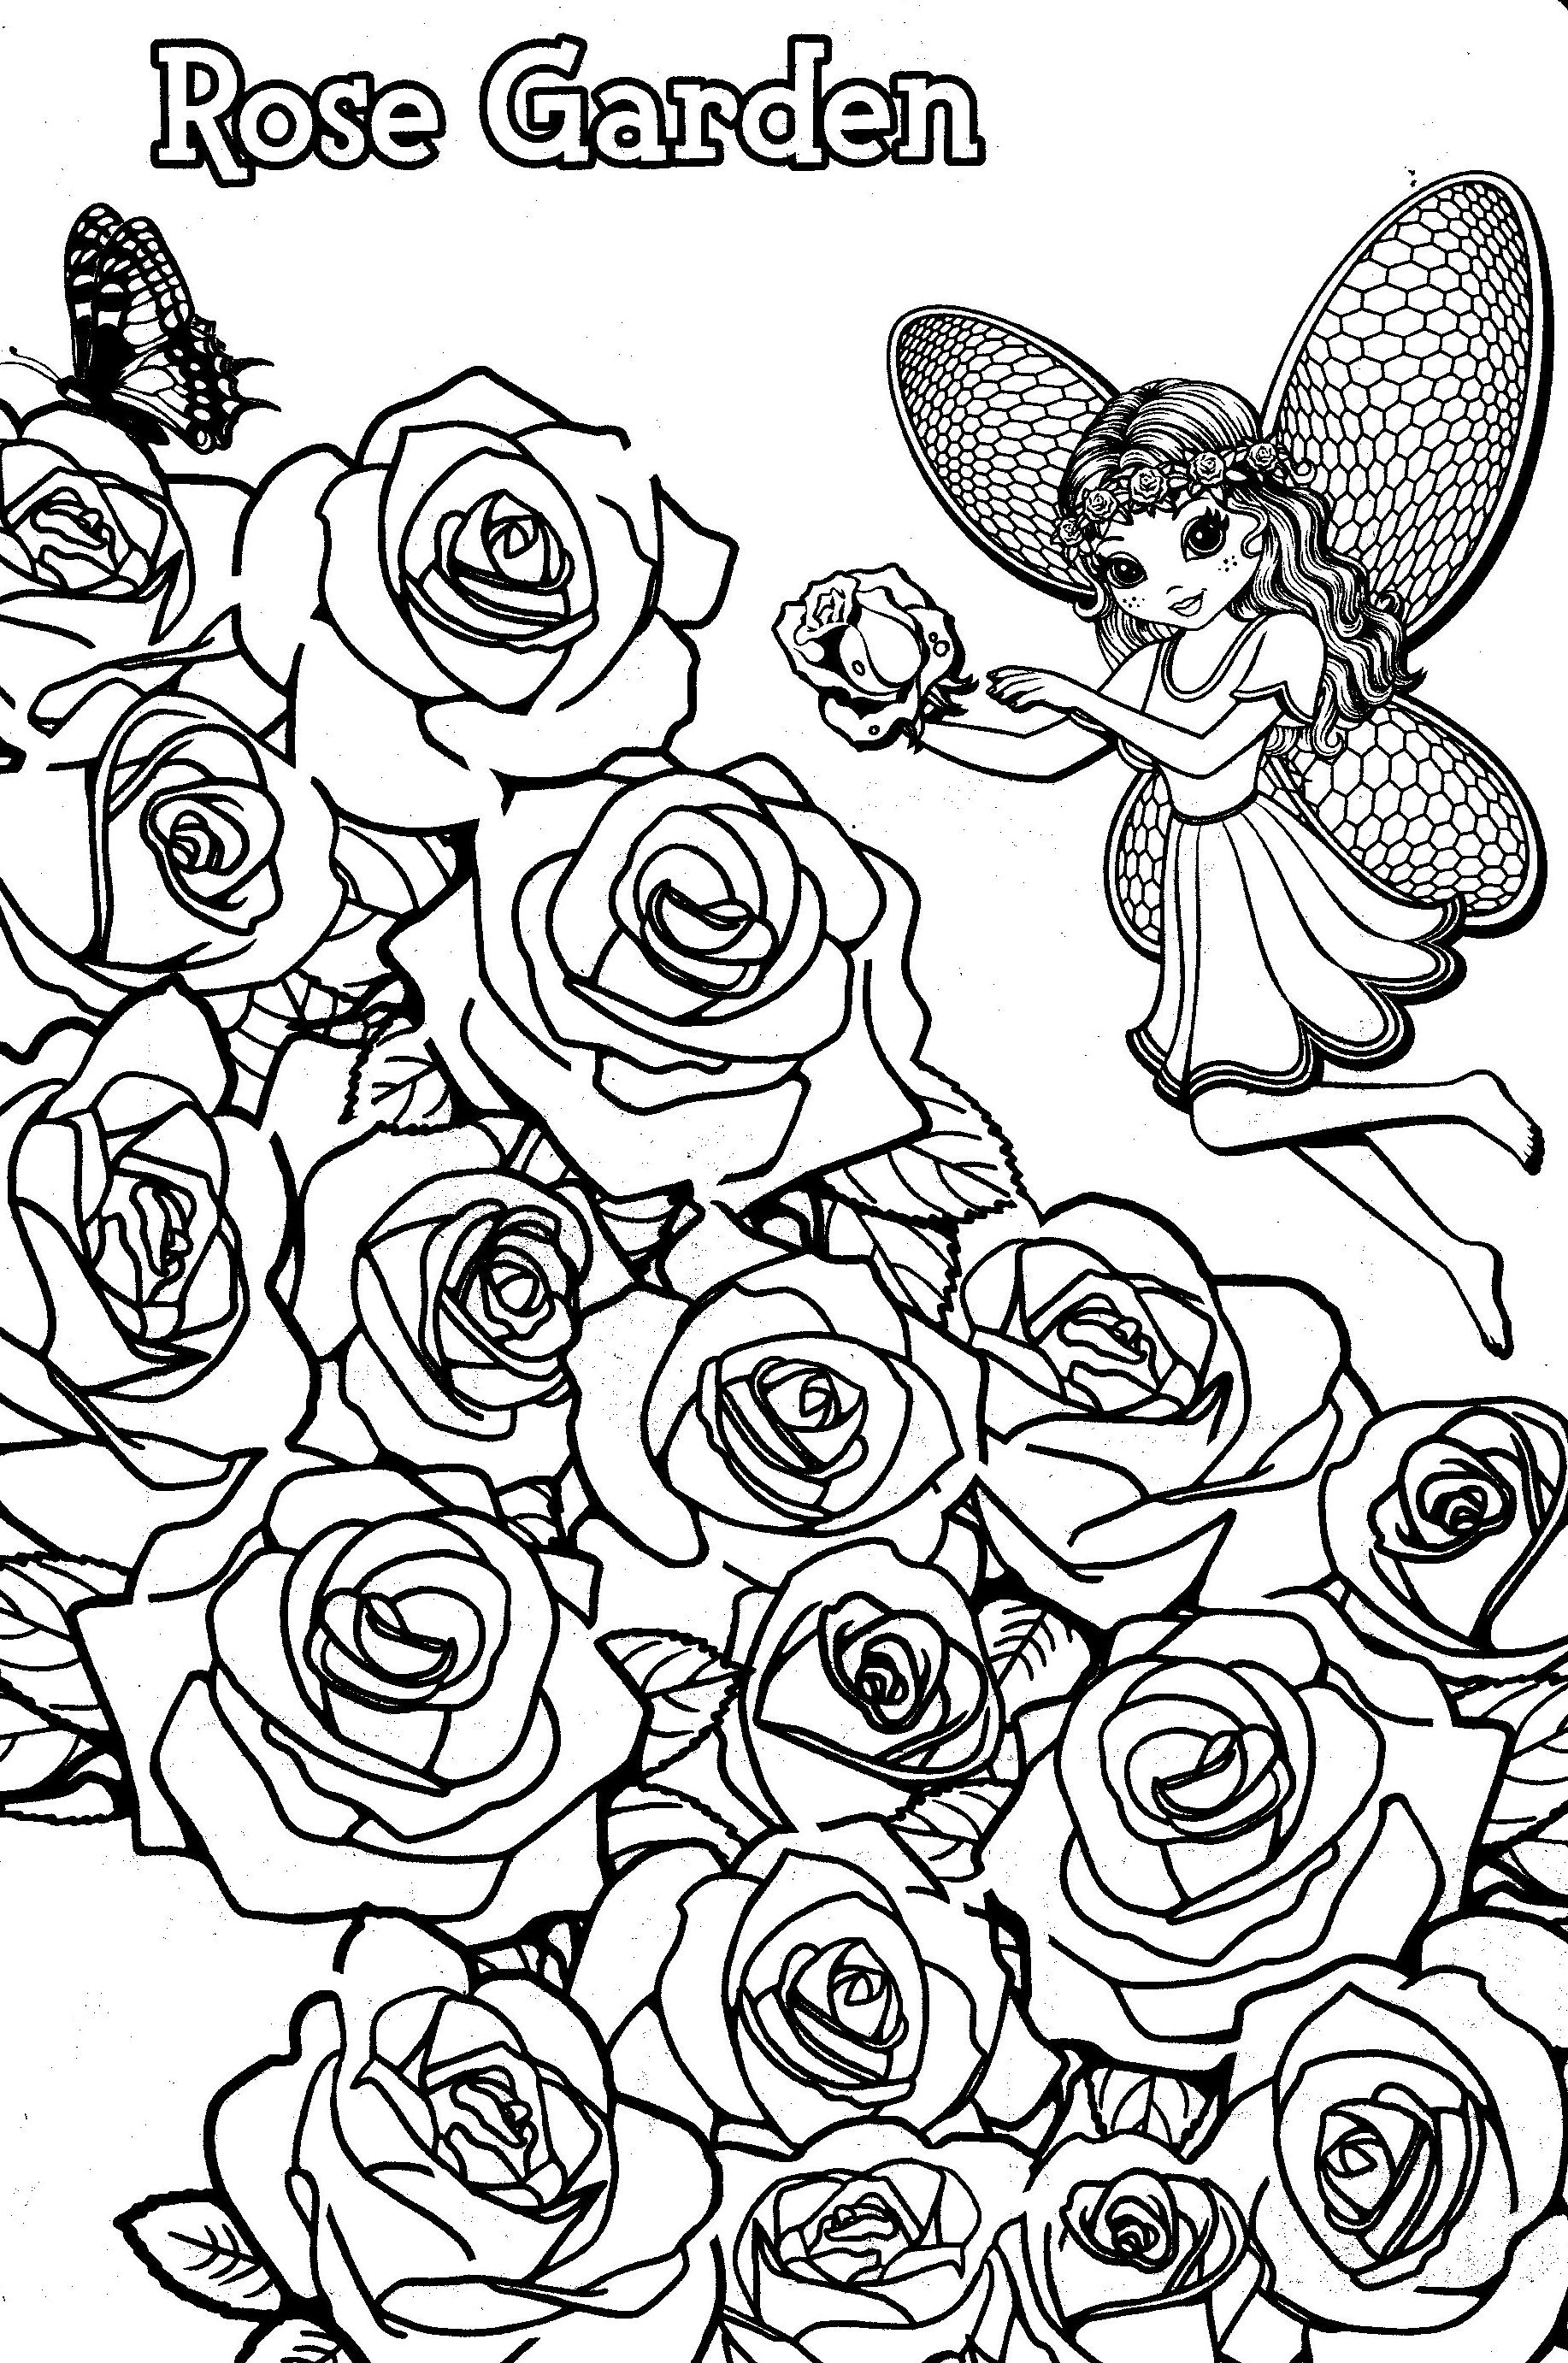 Lisa frank coloring pages to color online - Lisa Frank Coloring Pages Rose Garden Fairy